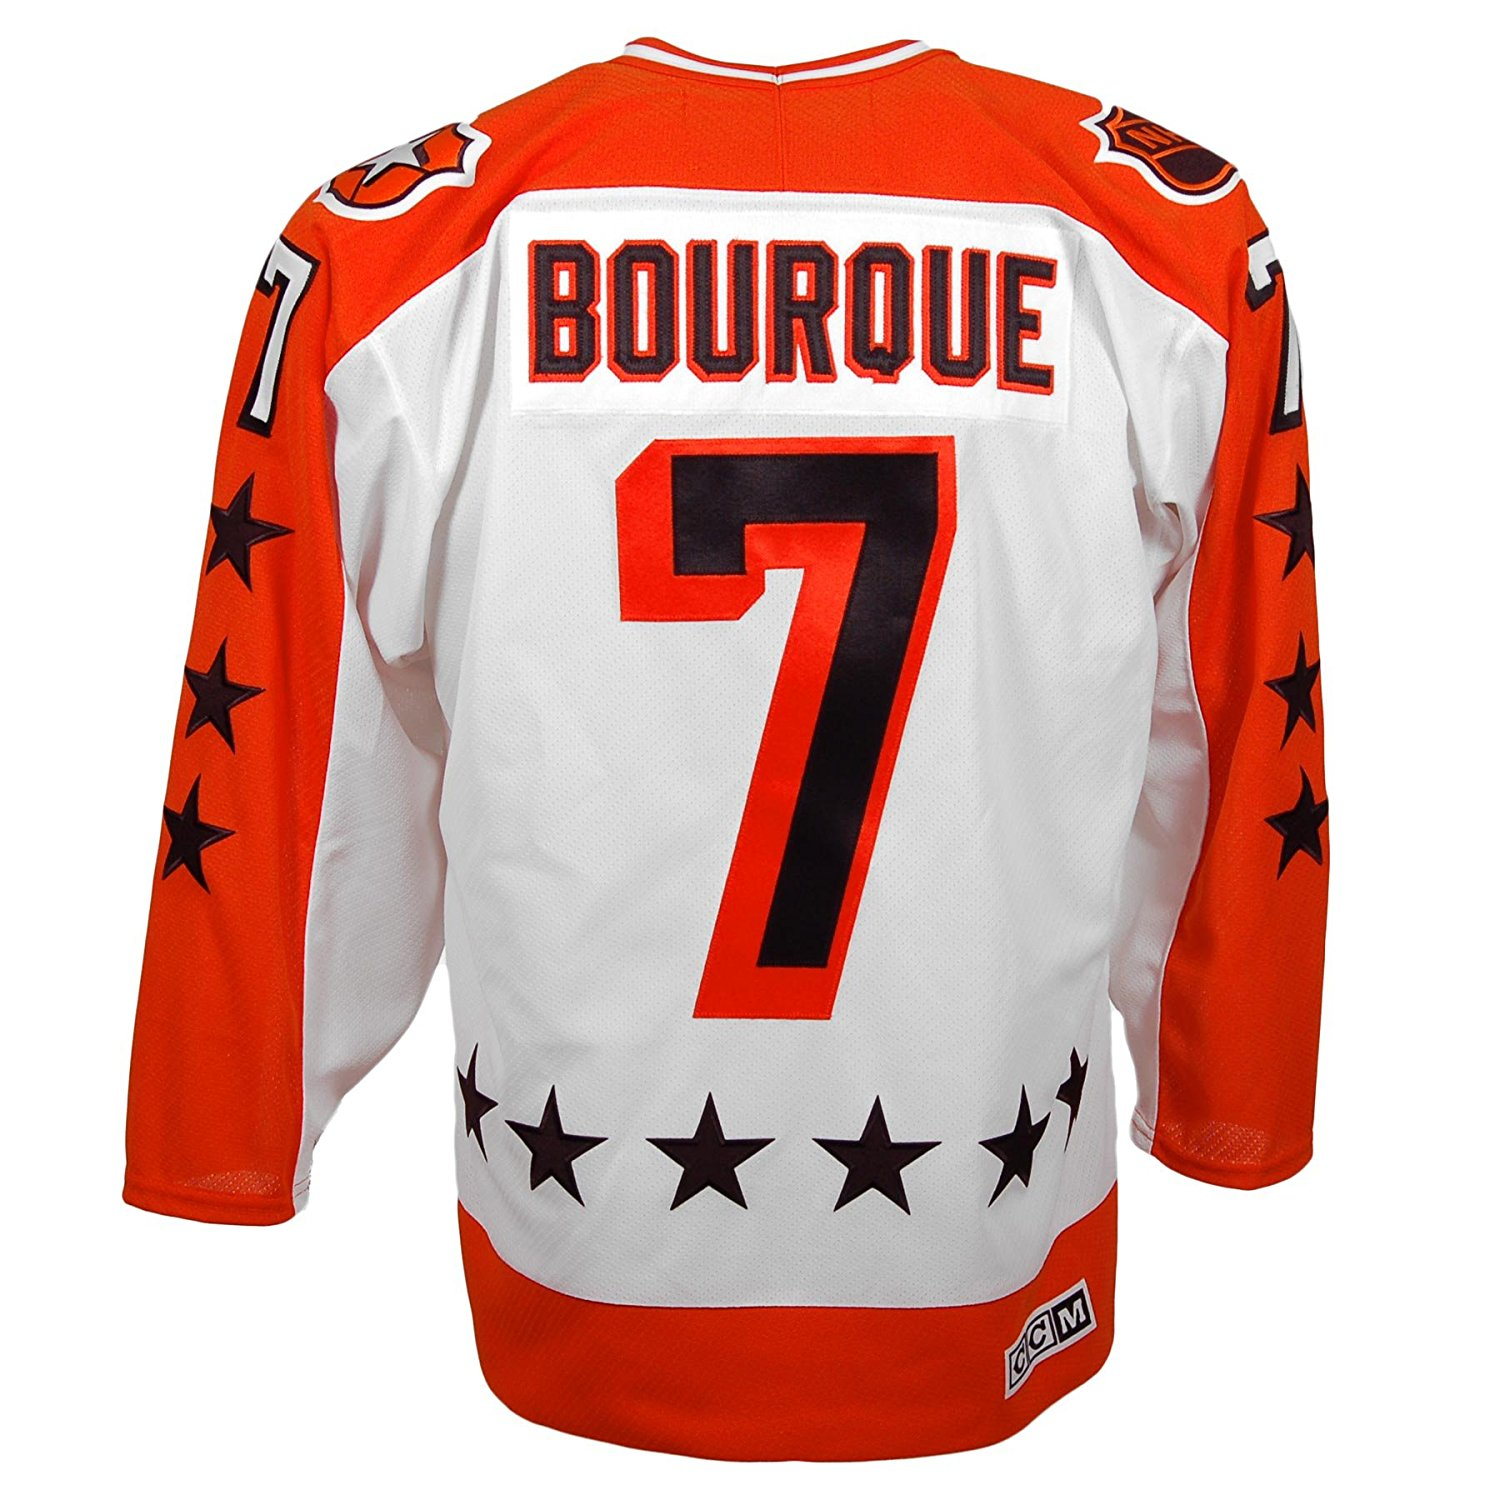 Raymond Bourque Wales Conference All-Star Vintage Replica Jersey... Featuring Hand-Stitched Pro Twill Name & Number